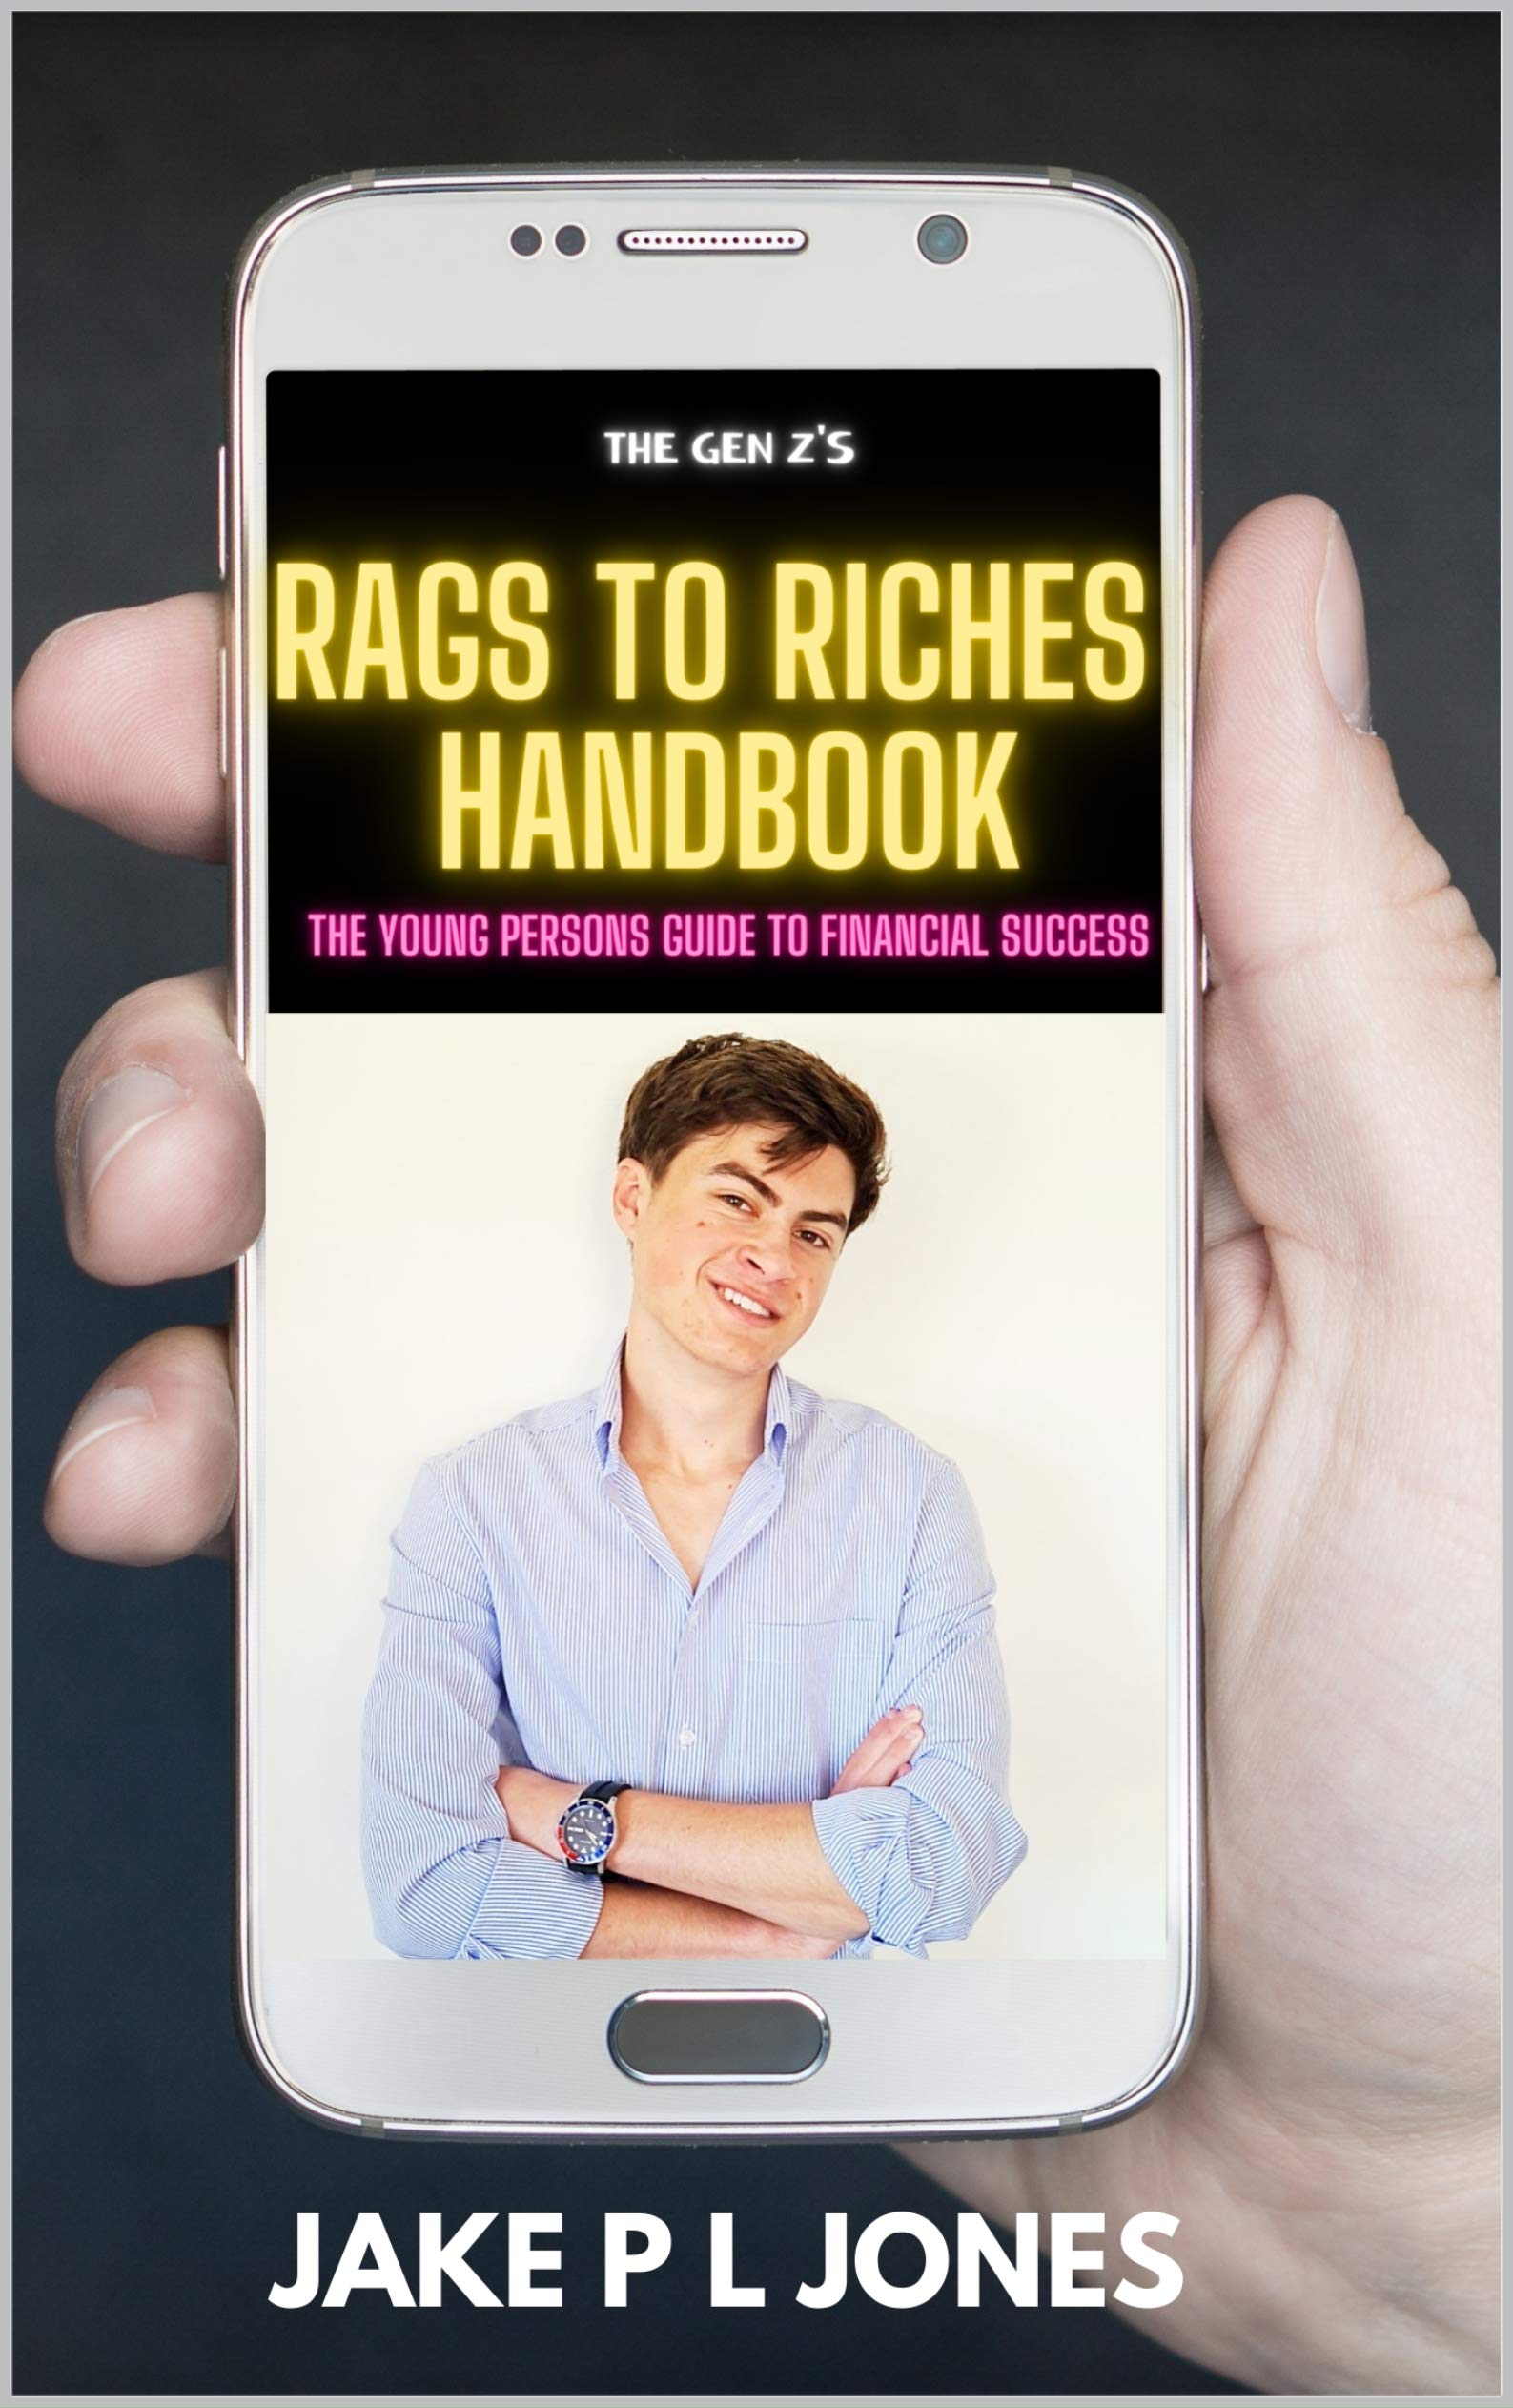 The genZ's Rags to Riches Handbook: The young persons guide to financial success